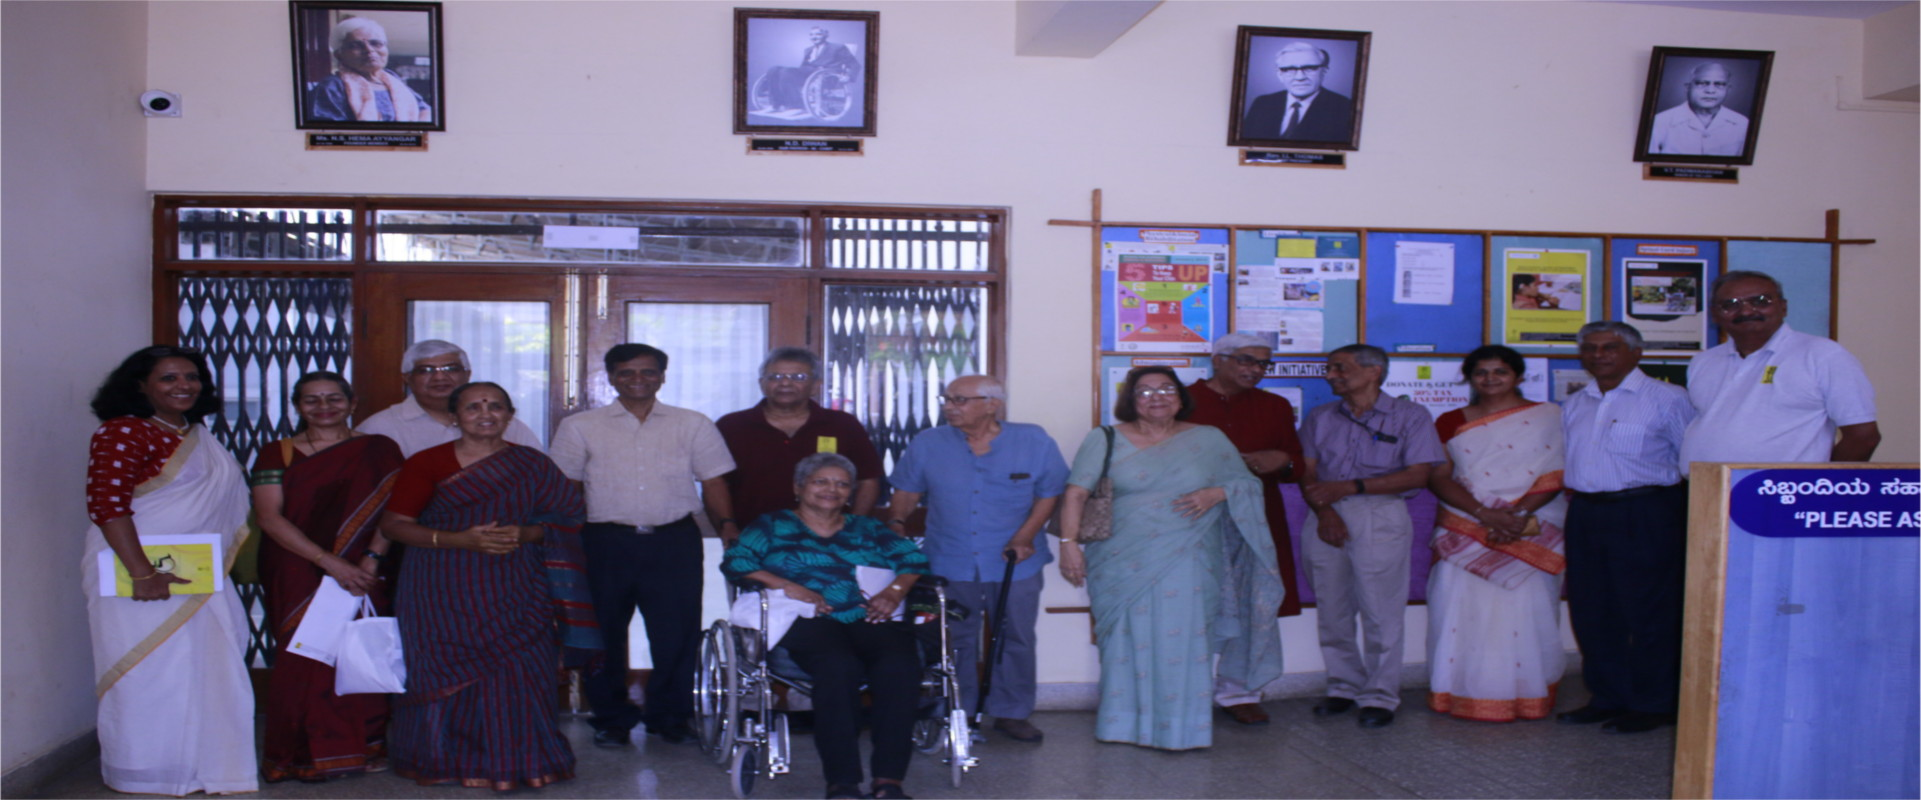 APD present and past board members | APD India